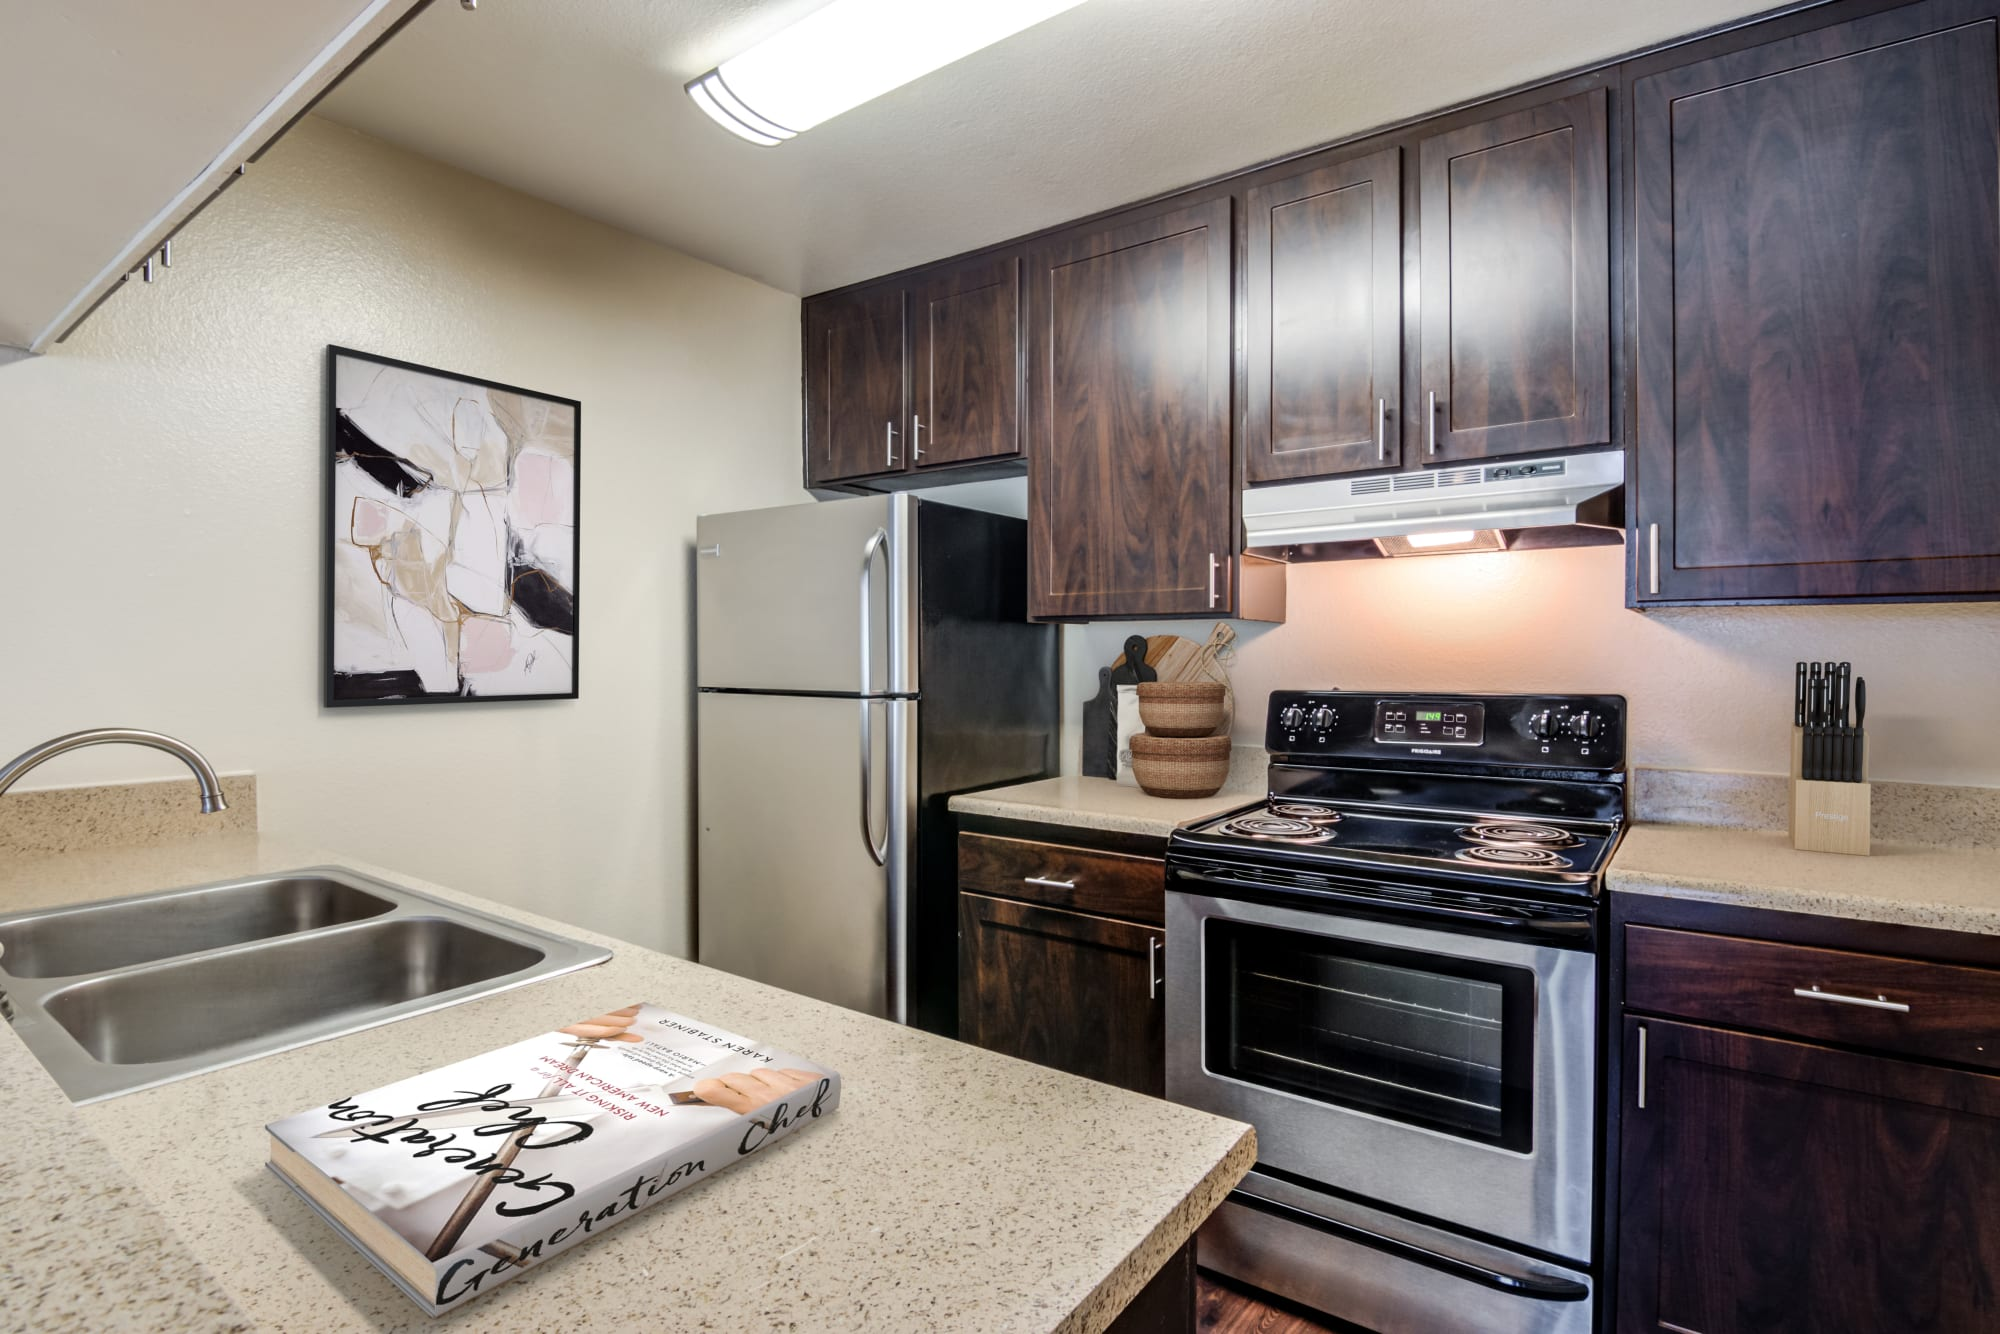 A renovated kitchen with brown cabinets at Hillside Terrace Apartments in Lemon Grove, California